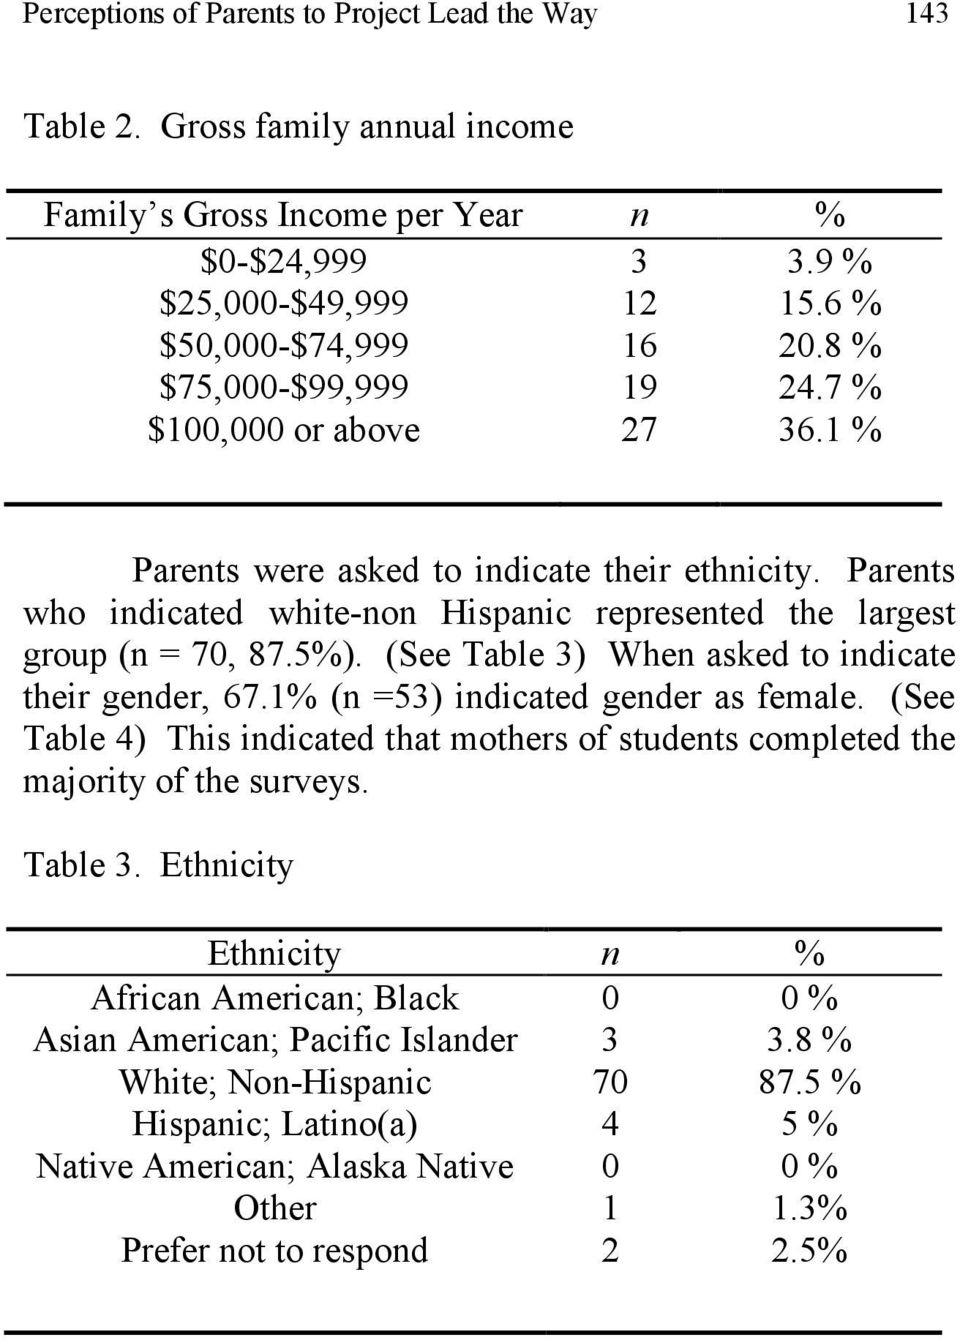 1 % Parents were asked to indicate their ethnicity. Parents who indicated white-non Hispanic represented the largest group (n = 70, 87.5%). (See Table 3) When asked to indicate their gender, 67.